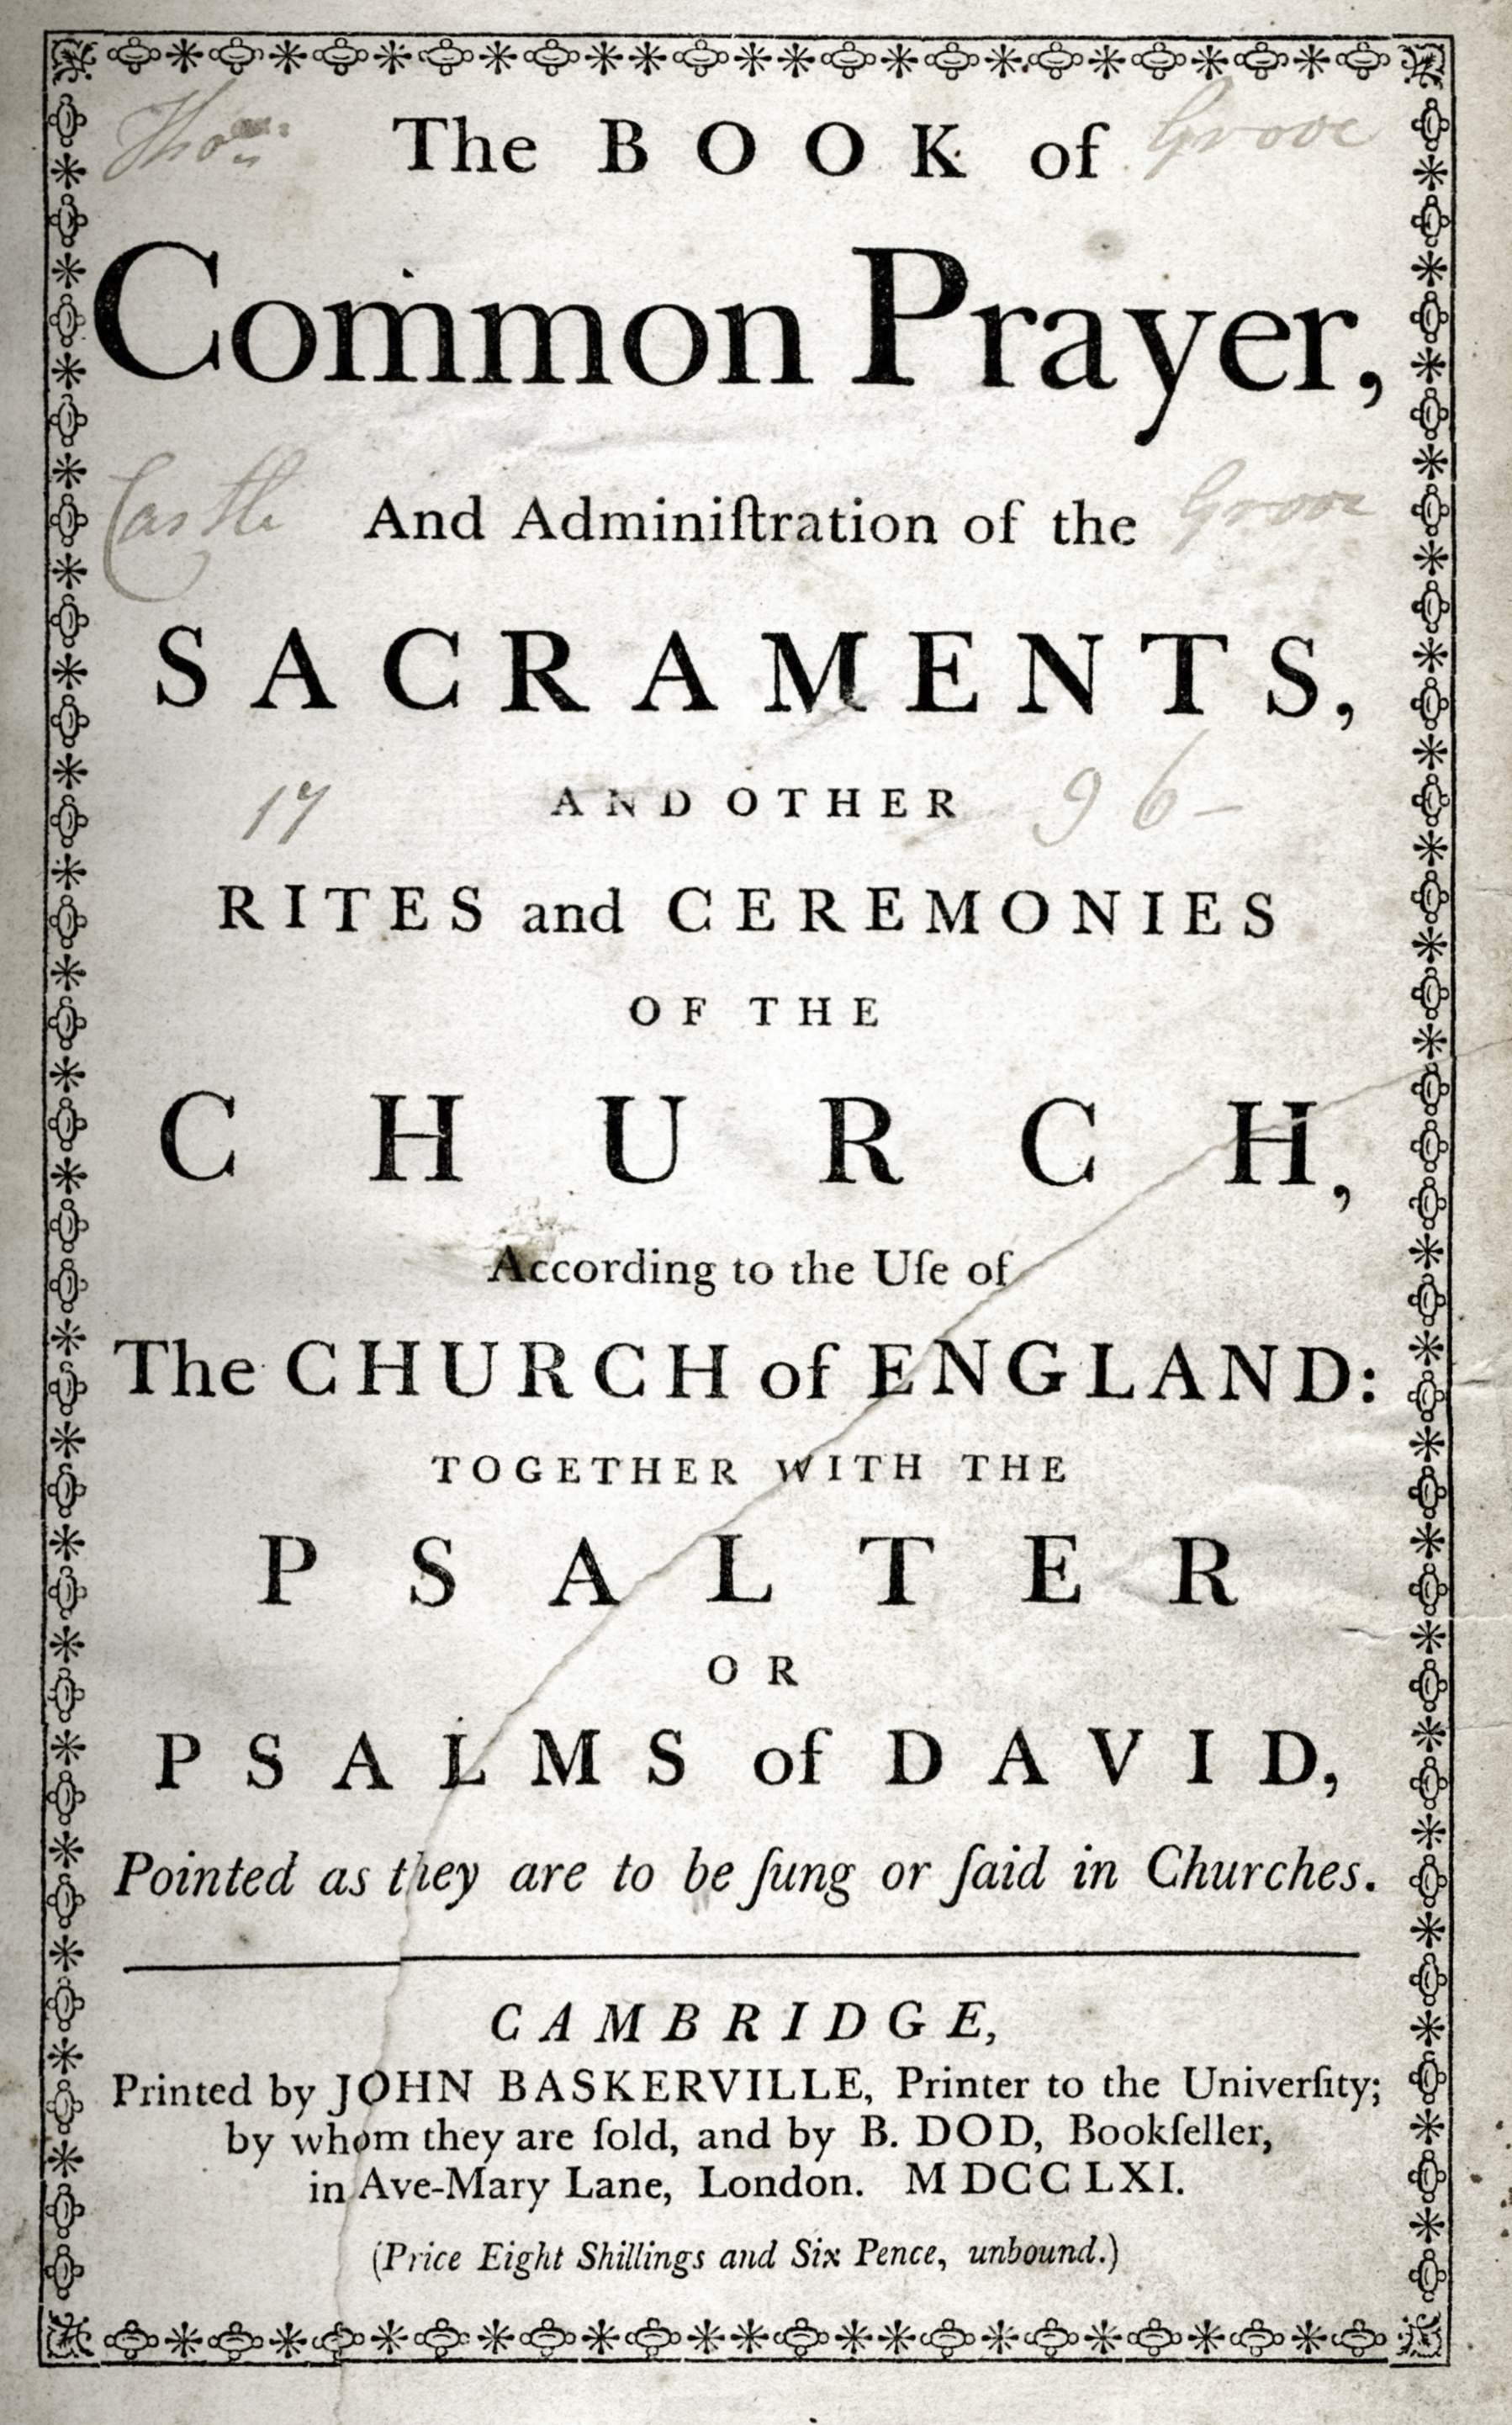 A prayer book printed in Baskerville from 1766.